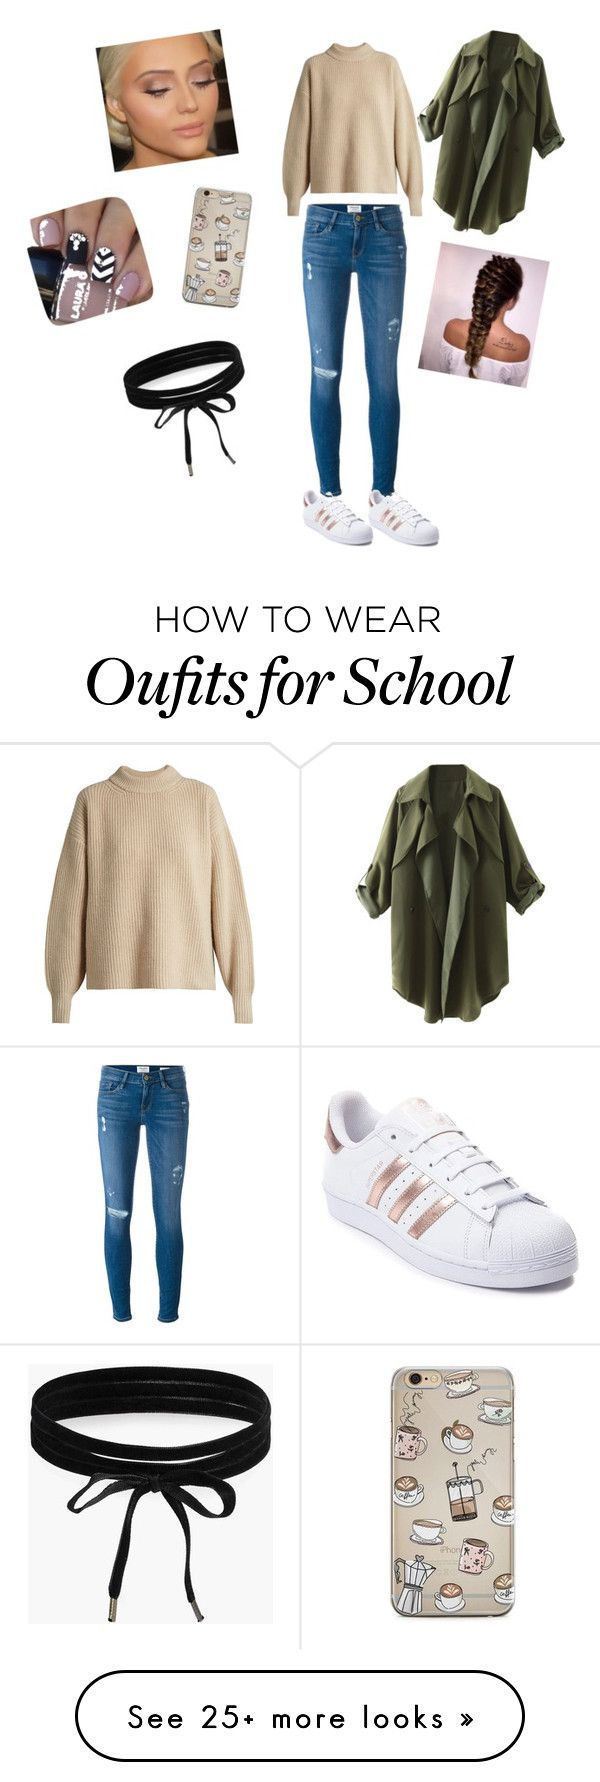 """School"" by ntejada on Polyvore featuring Frame, The Row, adidas and Boohoo"